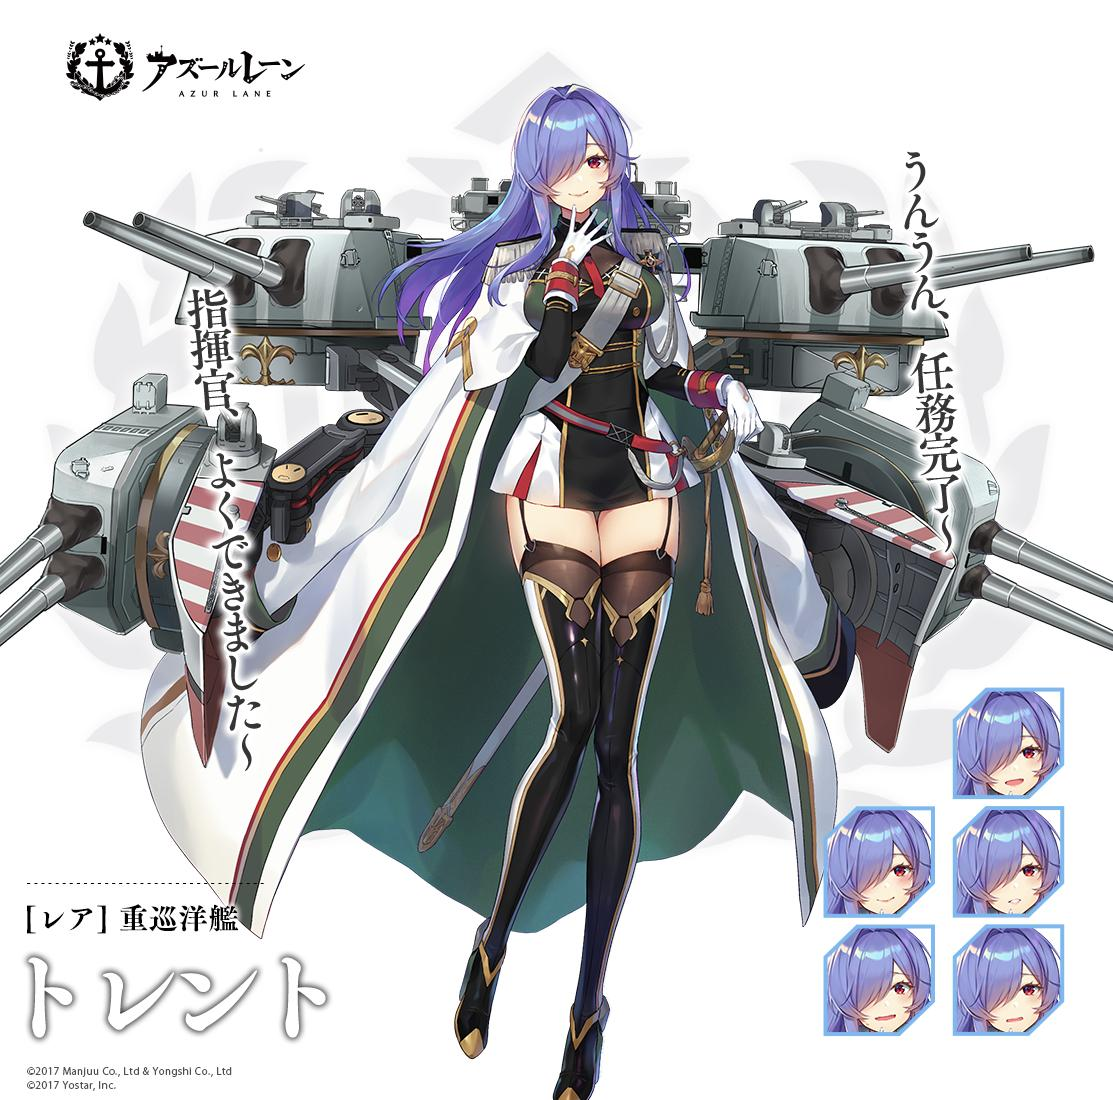 1girl ankle_boots azur_lane bangs black_footwear black_legwear boots breasts cannon character_name cloak dress expressions full_body garter_straps gloves hair_intakes hair_over_one_eye hand_on_hilt hand_up high_heel_boots high_heels large_breasts long_hair looking_at_viewer medal multicolored multicolored_cloak multicolored_clothes multicolored_dress official_art purple_hair rigging saber_(weapon) short_dress sidelocks sleeve_cuffs solo sword thigh-highs trent_(azur_lane) turret violet_eyes watermark weapon white_gloves